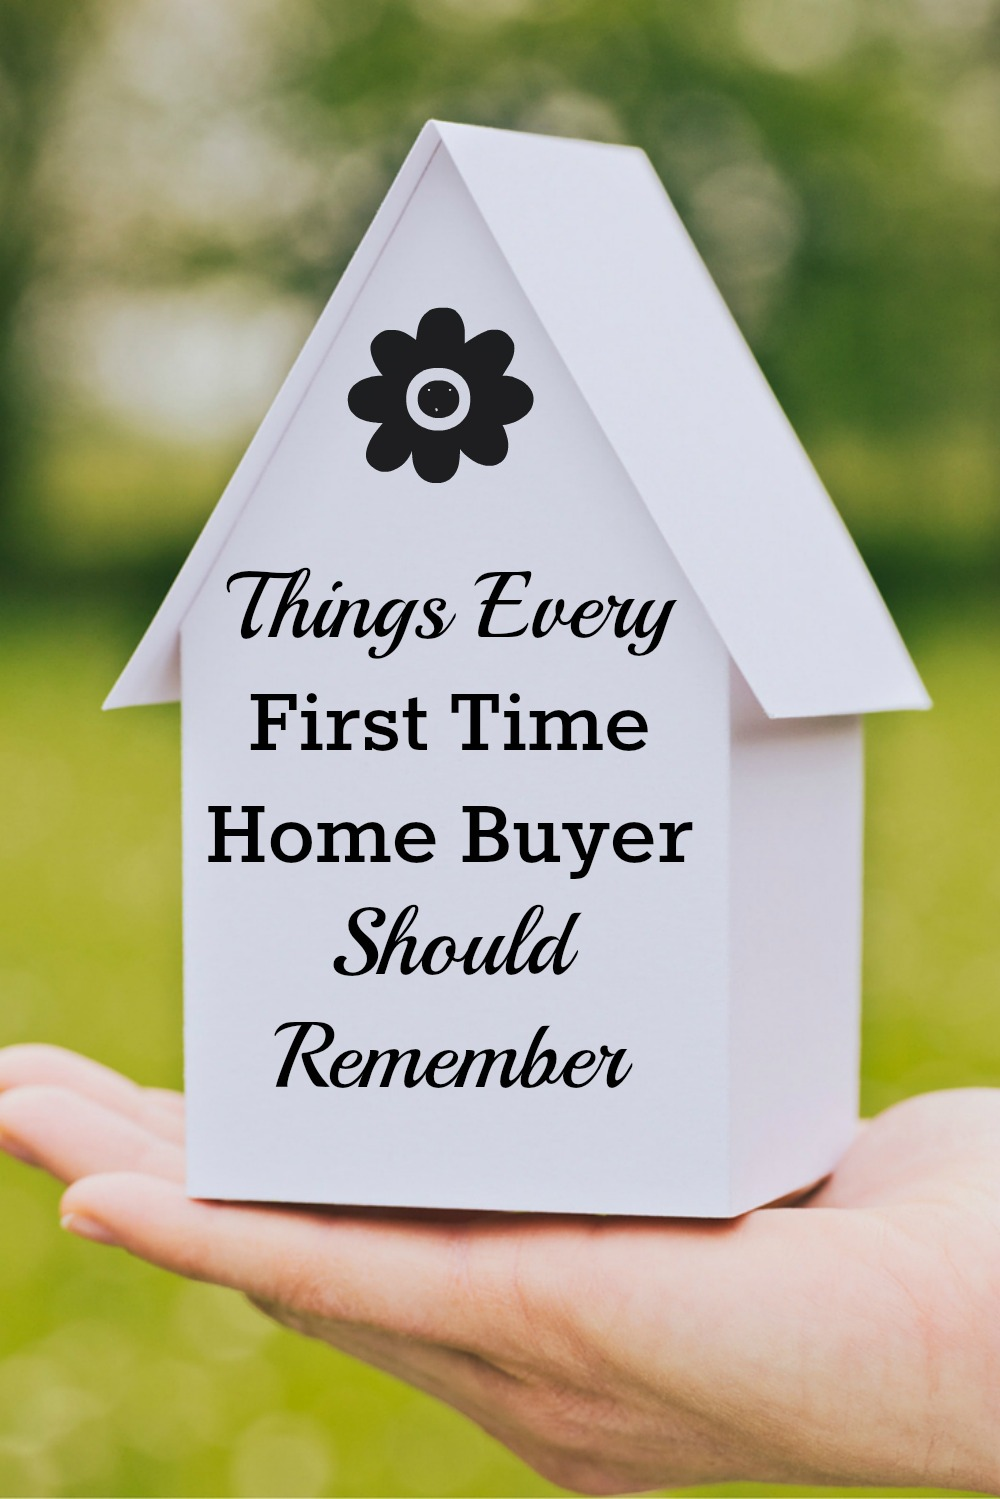 Things Every First Time Home Buyer Should Remember